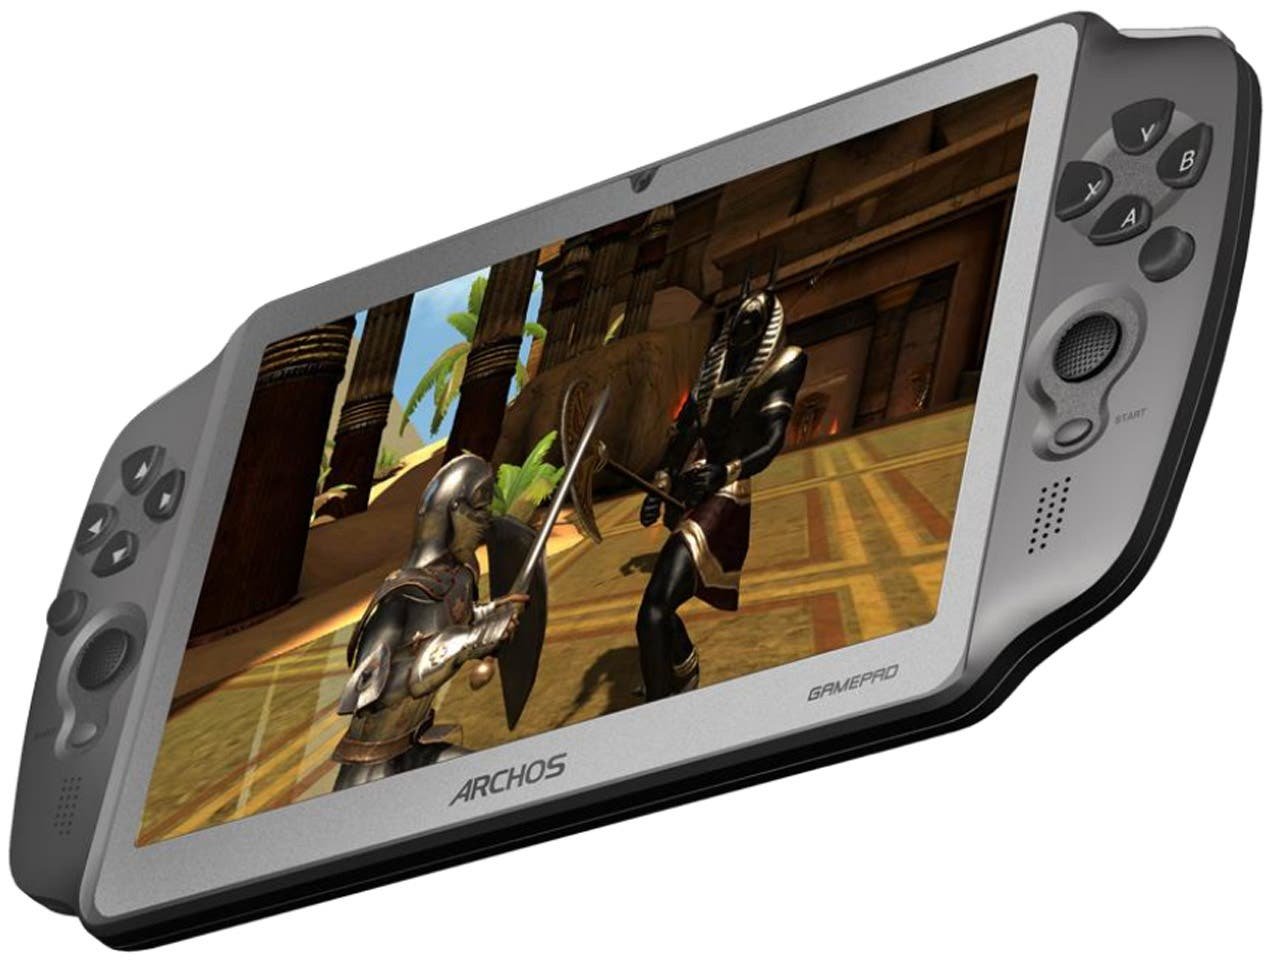 Archos GamePad Spiele-Tablet für 150 Dollar in Aktion – Emulator-Action im Video